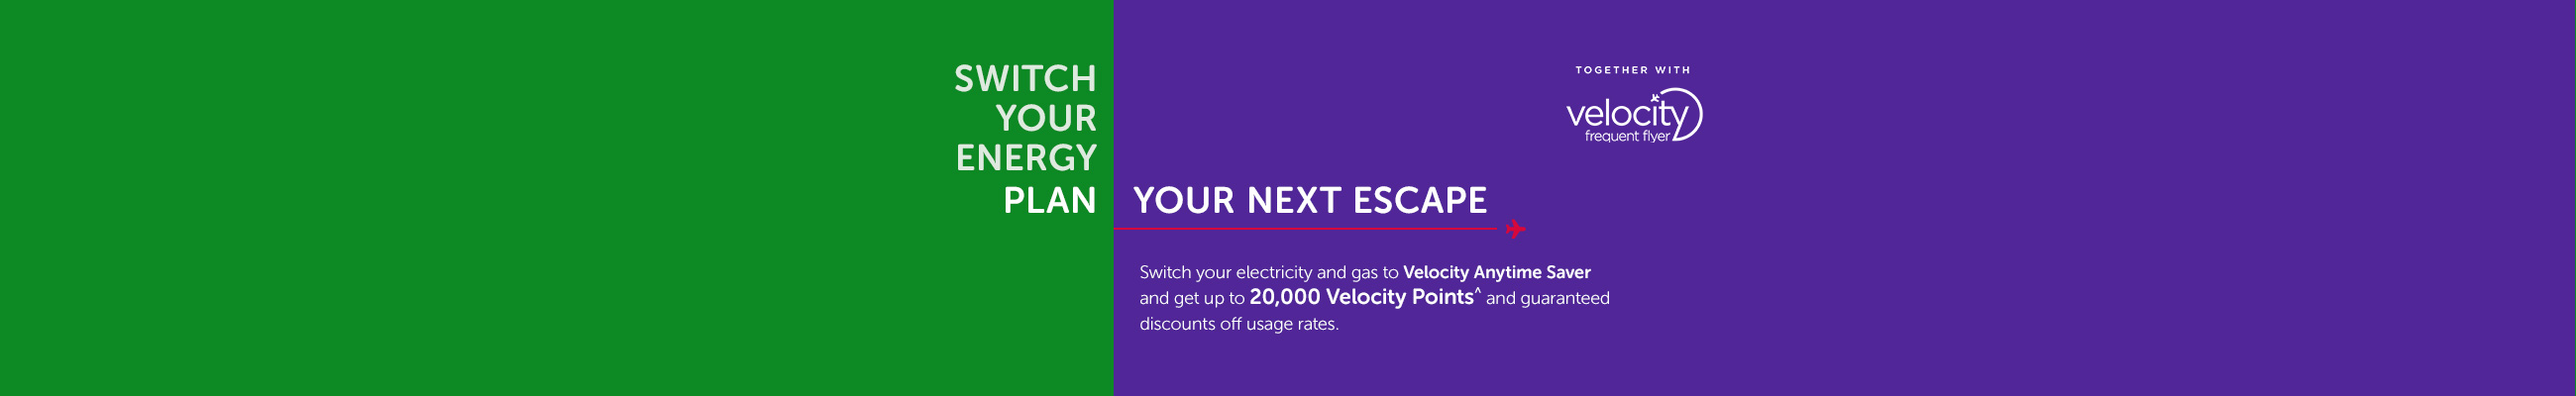 Switch your electricity and gas to Velocity Anytime Saver and get 20000 Velocity Points^ and guaranteed discounts off usage rates.